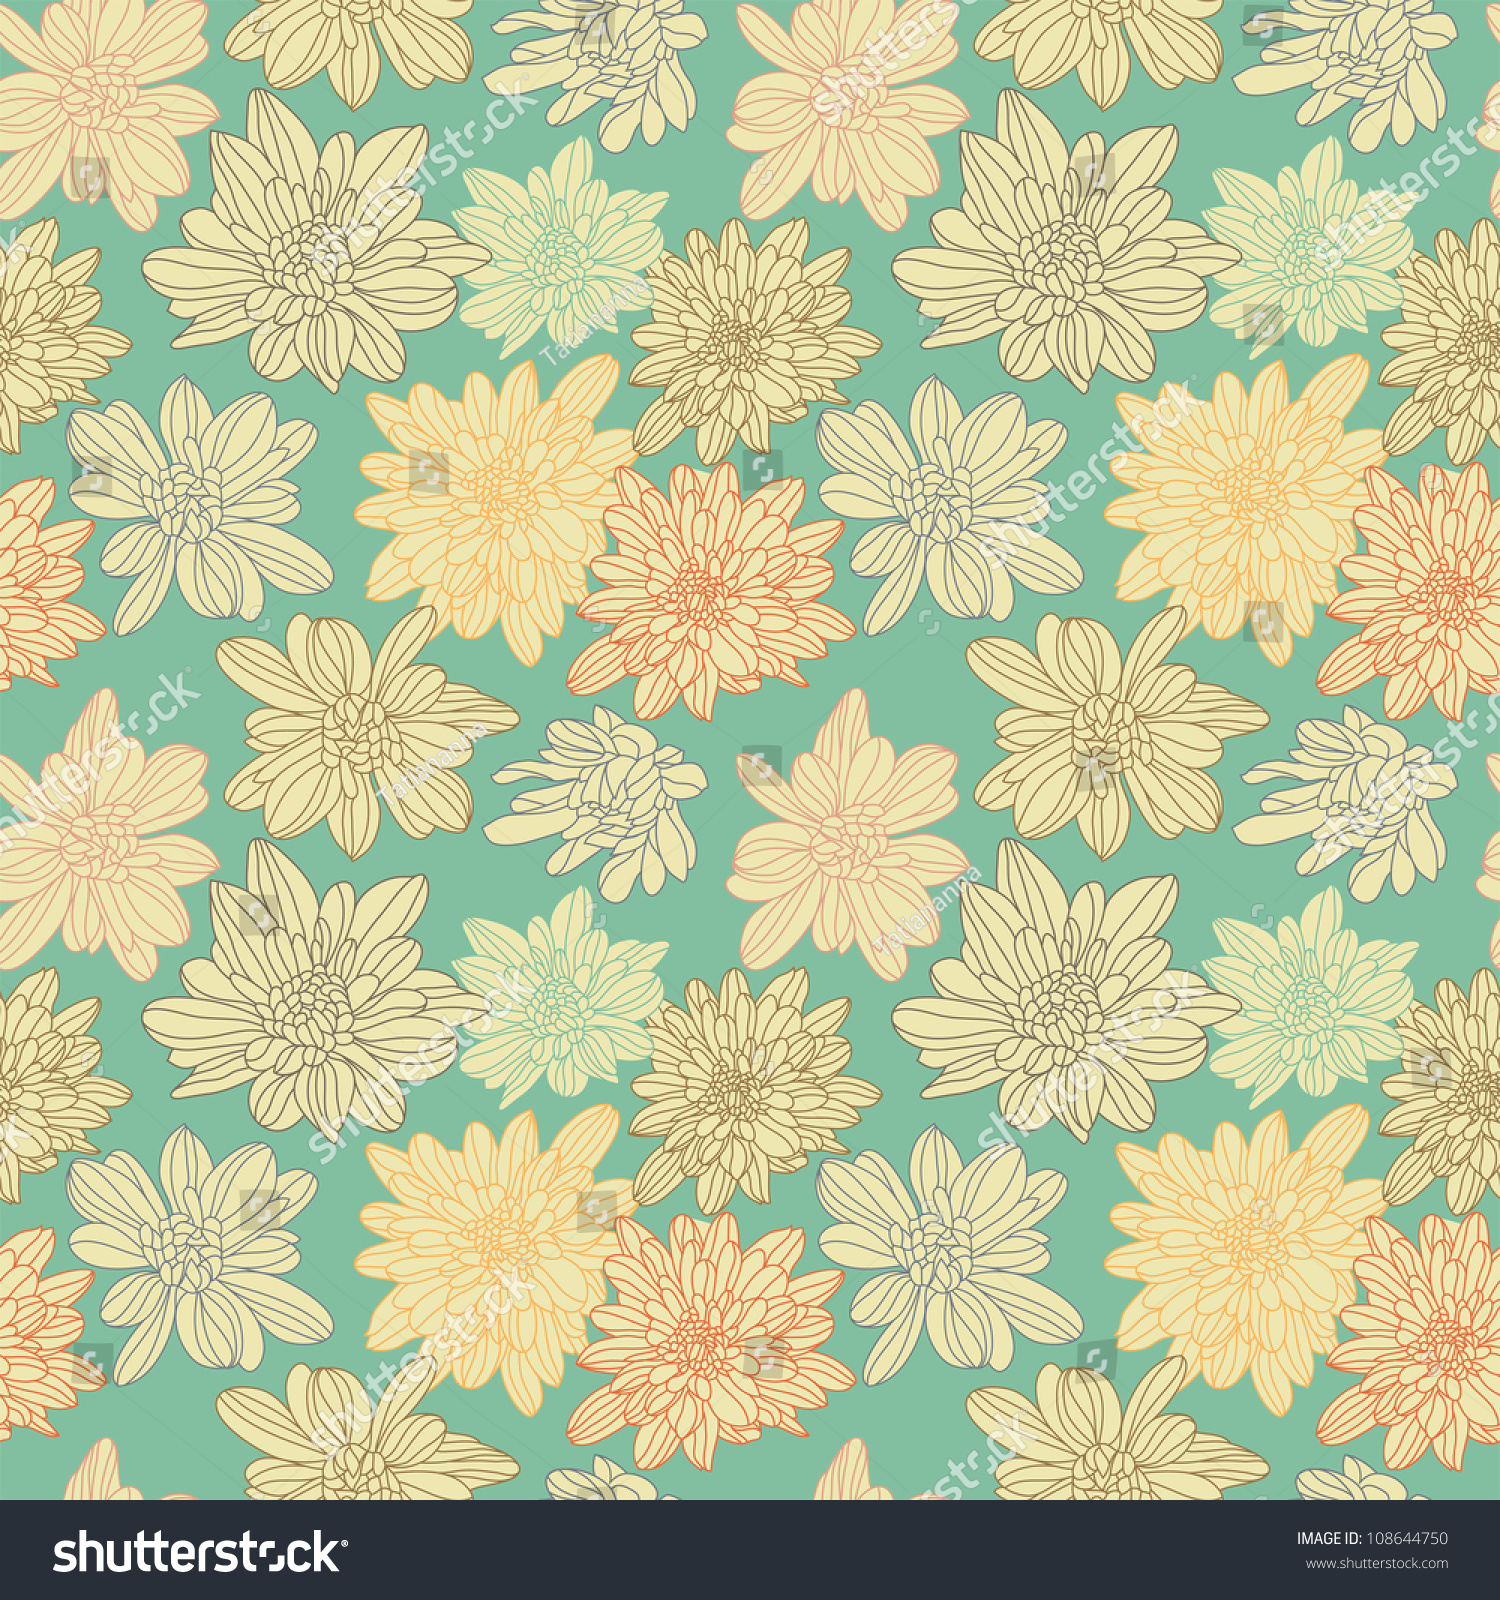 Floral Seamless Pattern With Cute Abstract Flower Royalty Free ...